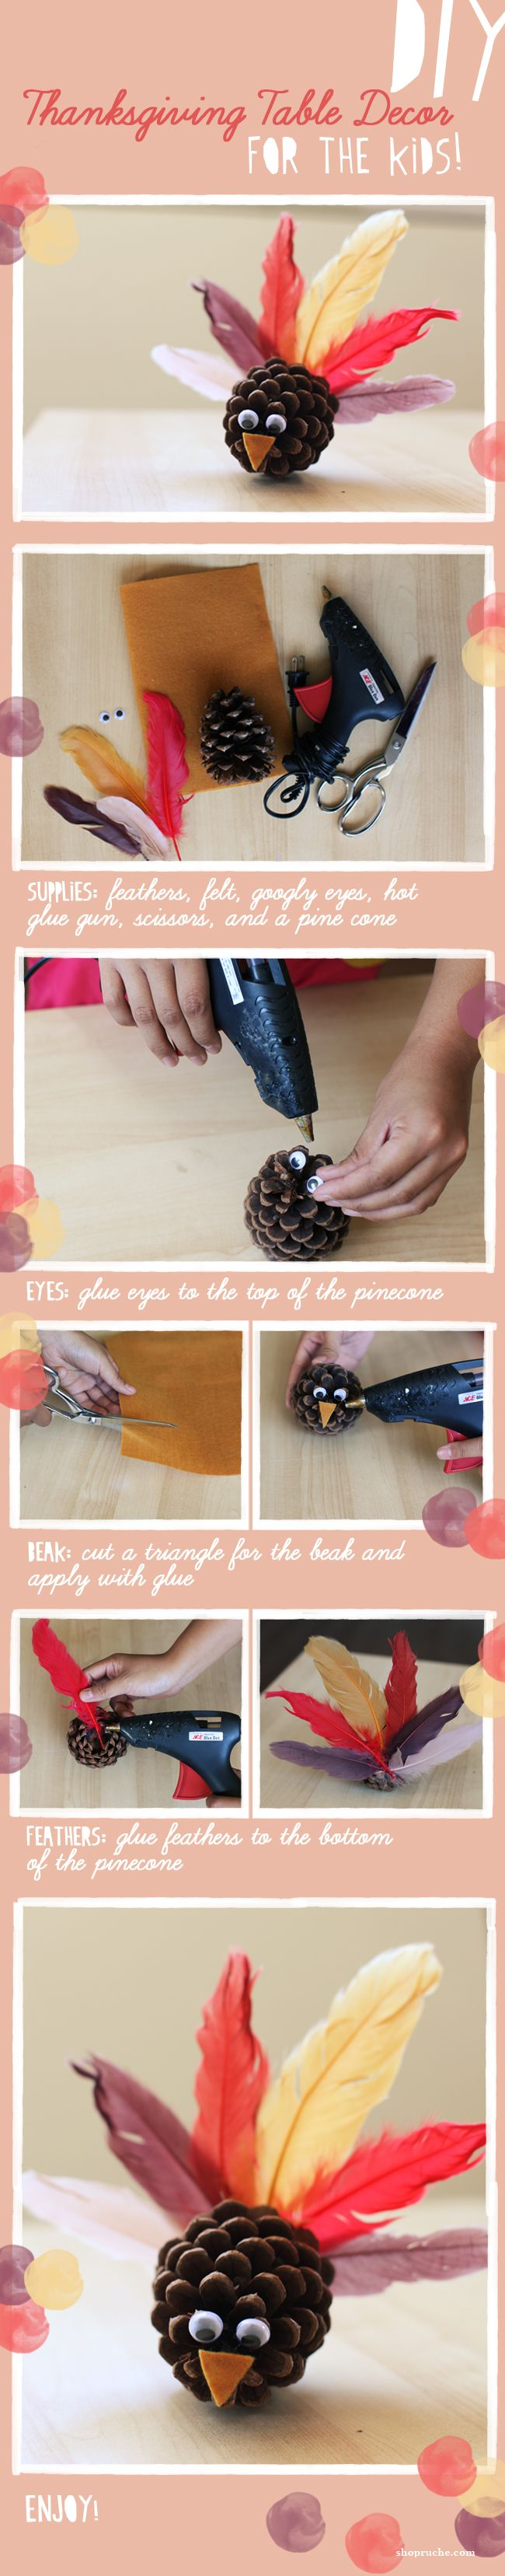 Thanksgiving turkey decor - Diy Thanksgiving Pinecone Turkey Decorations Good For Teachers To Do With Younger Students For Around Thanksgiving